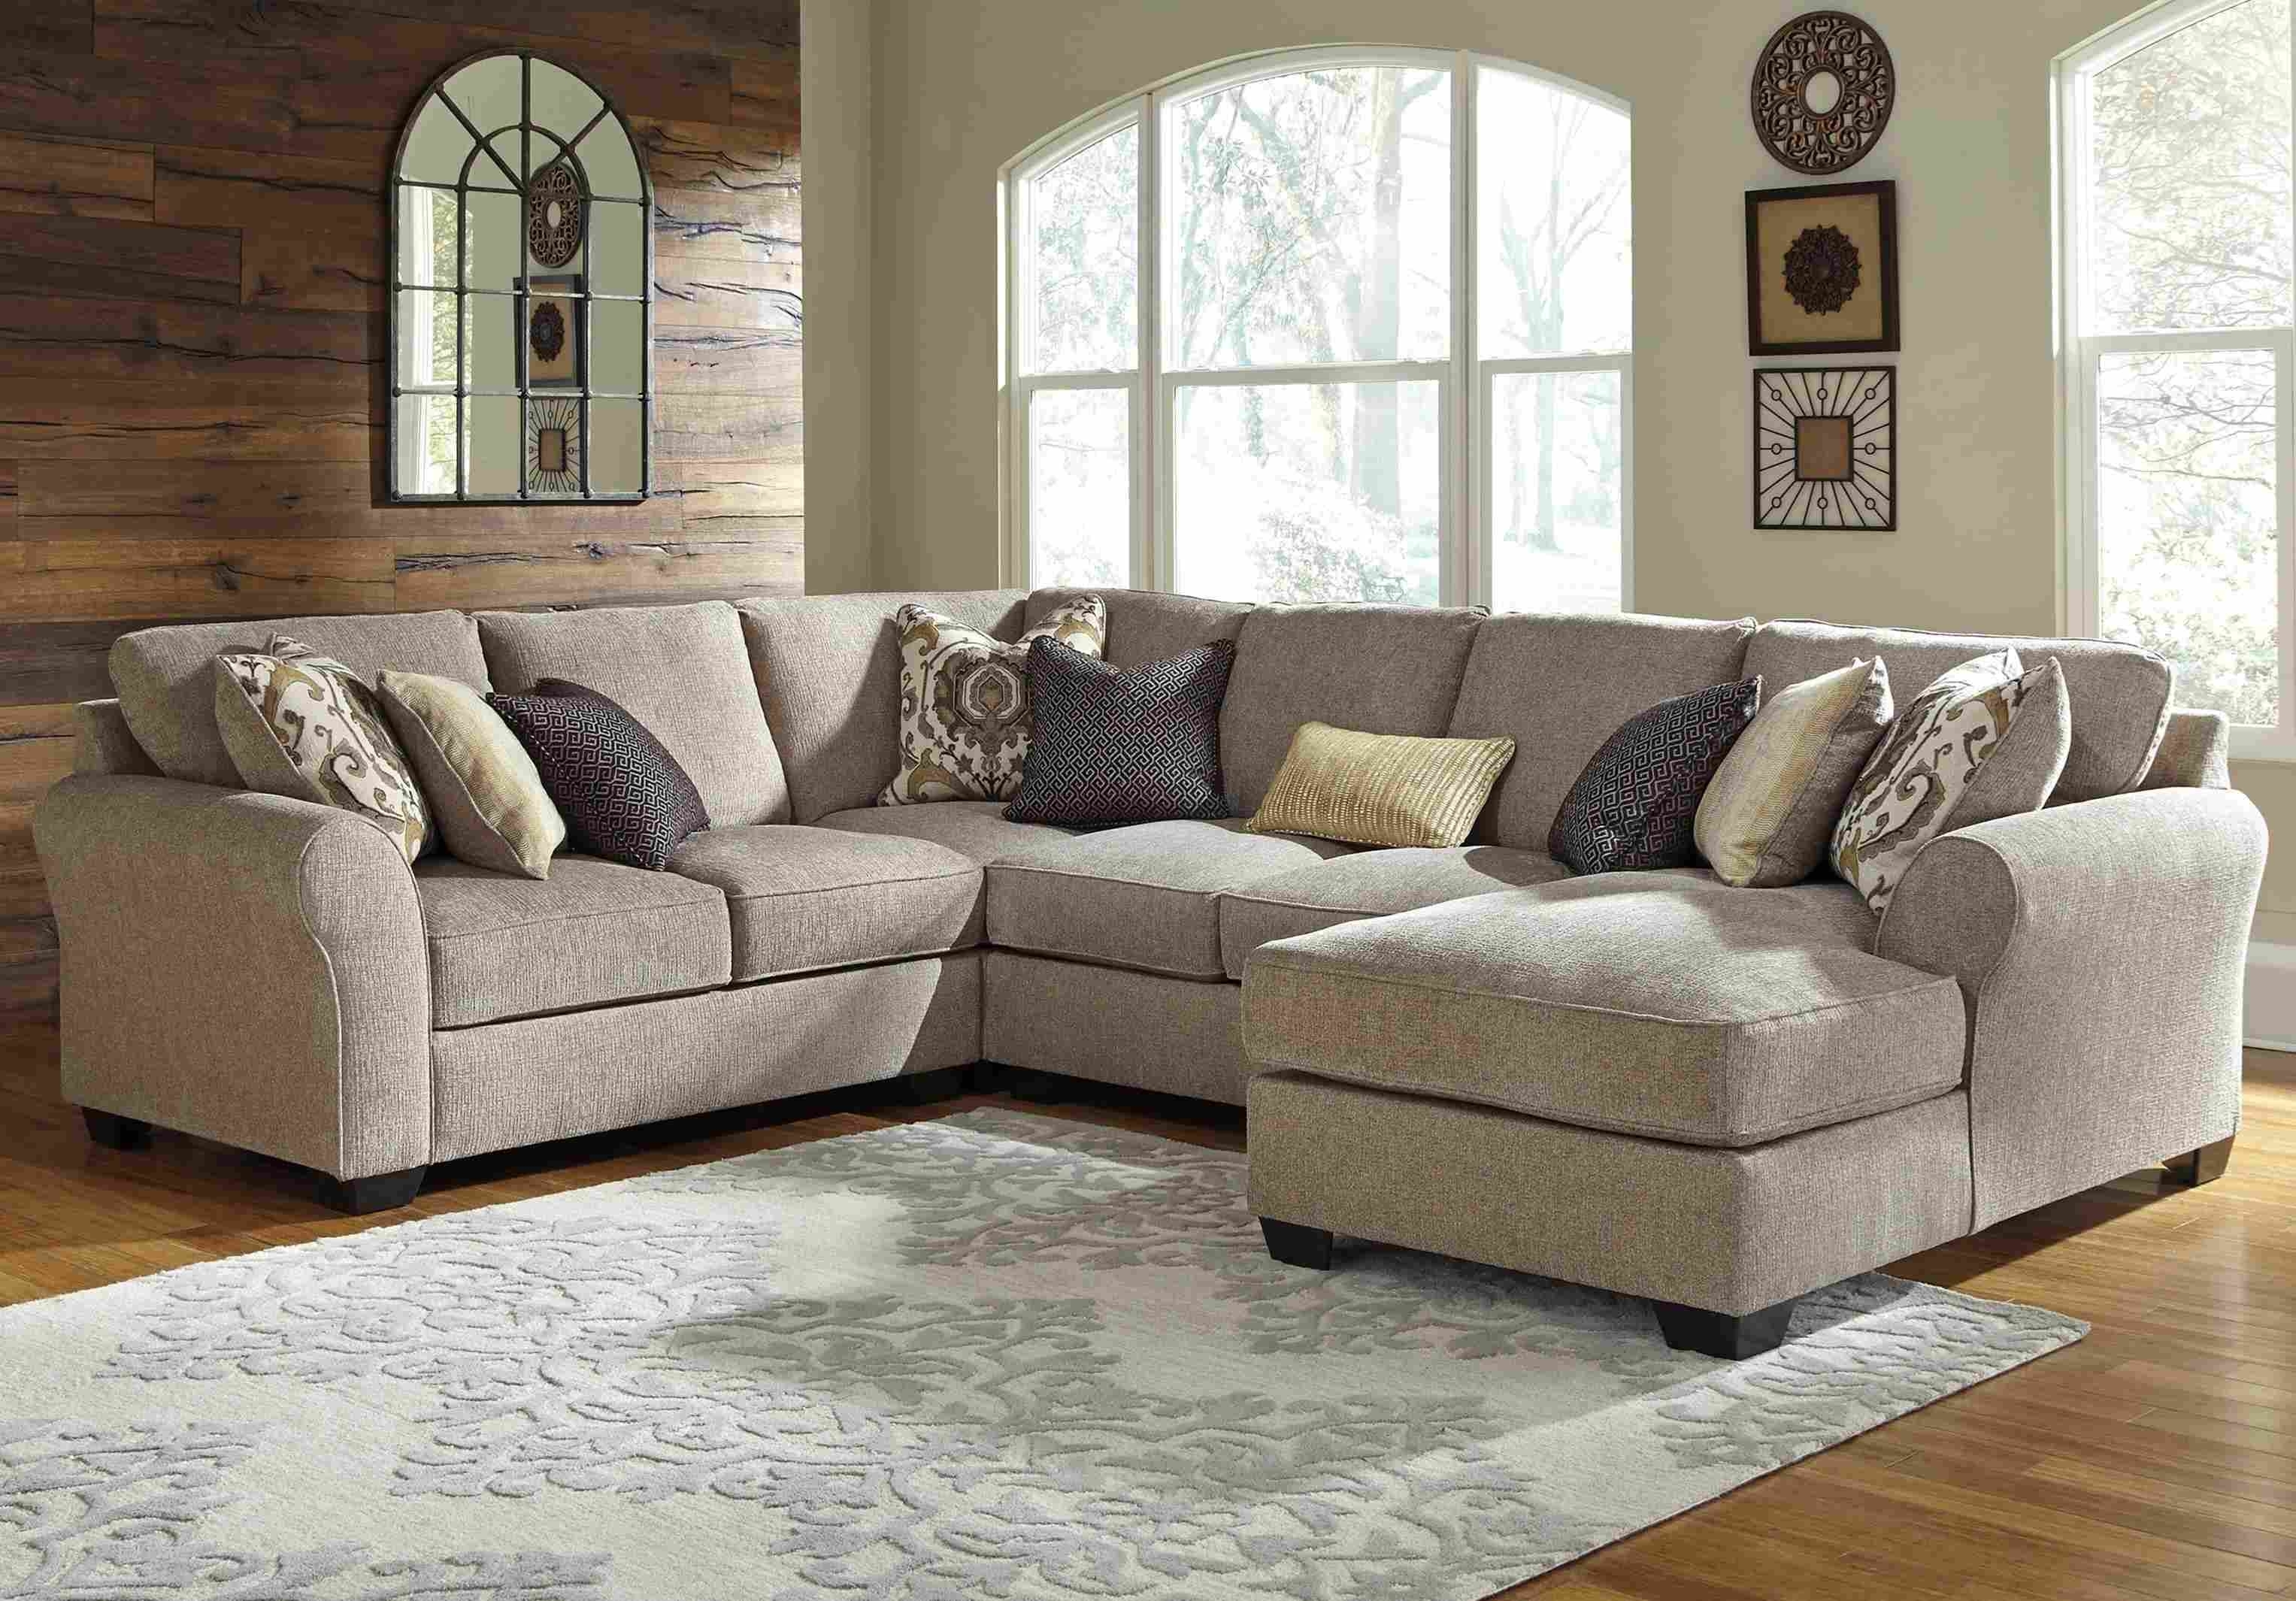 Microfiberctional Sofa With Chaise Amazing Photo Inspirations With Arrowmask 2 Piece Sectionals With Raf Chaise (Image 21 of 25)